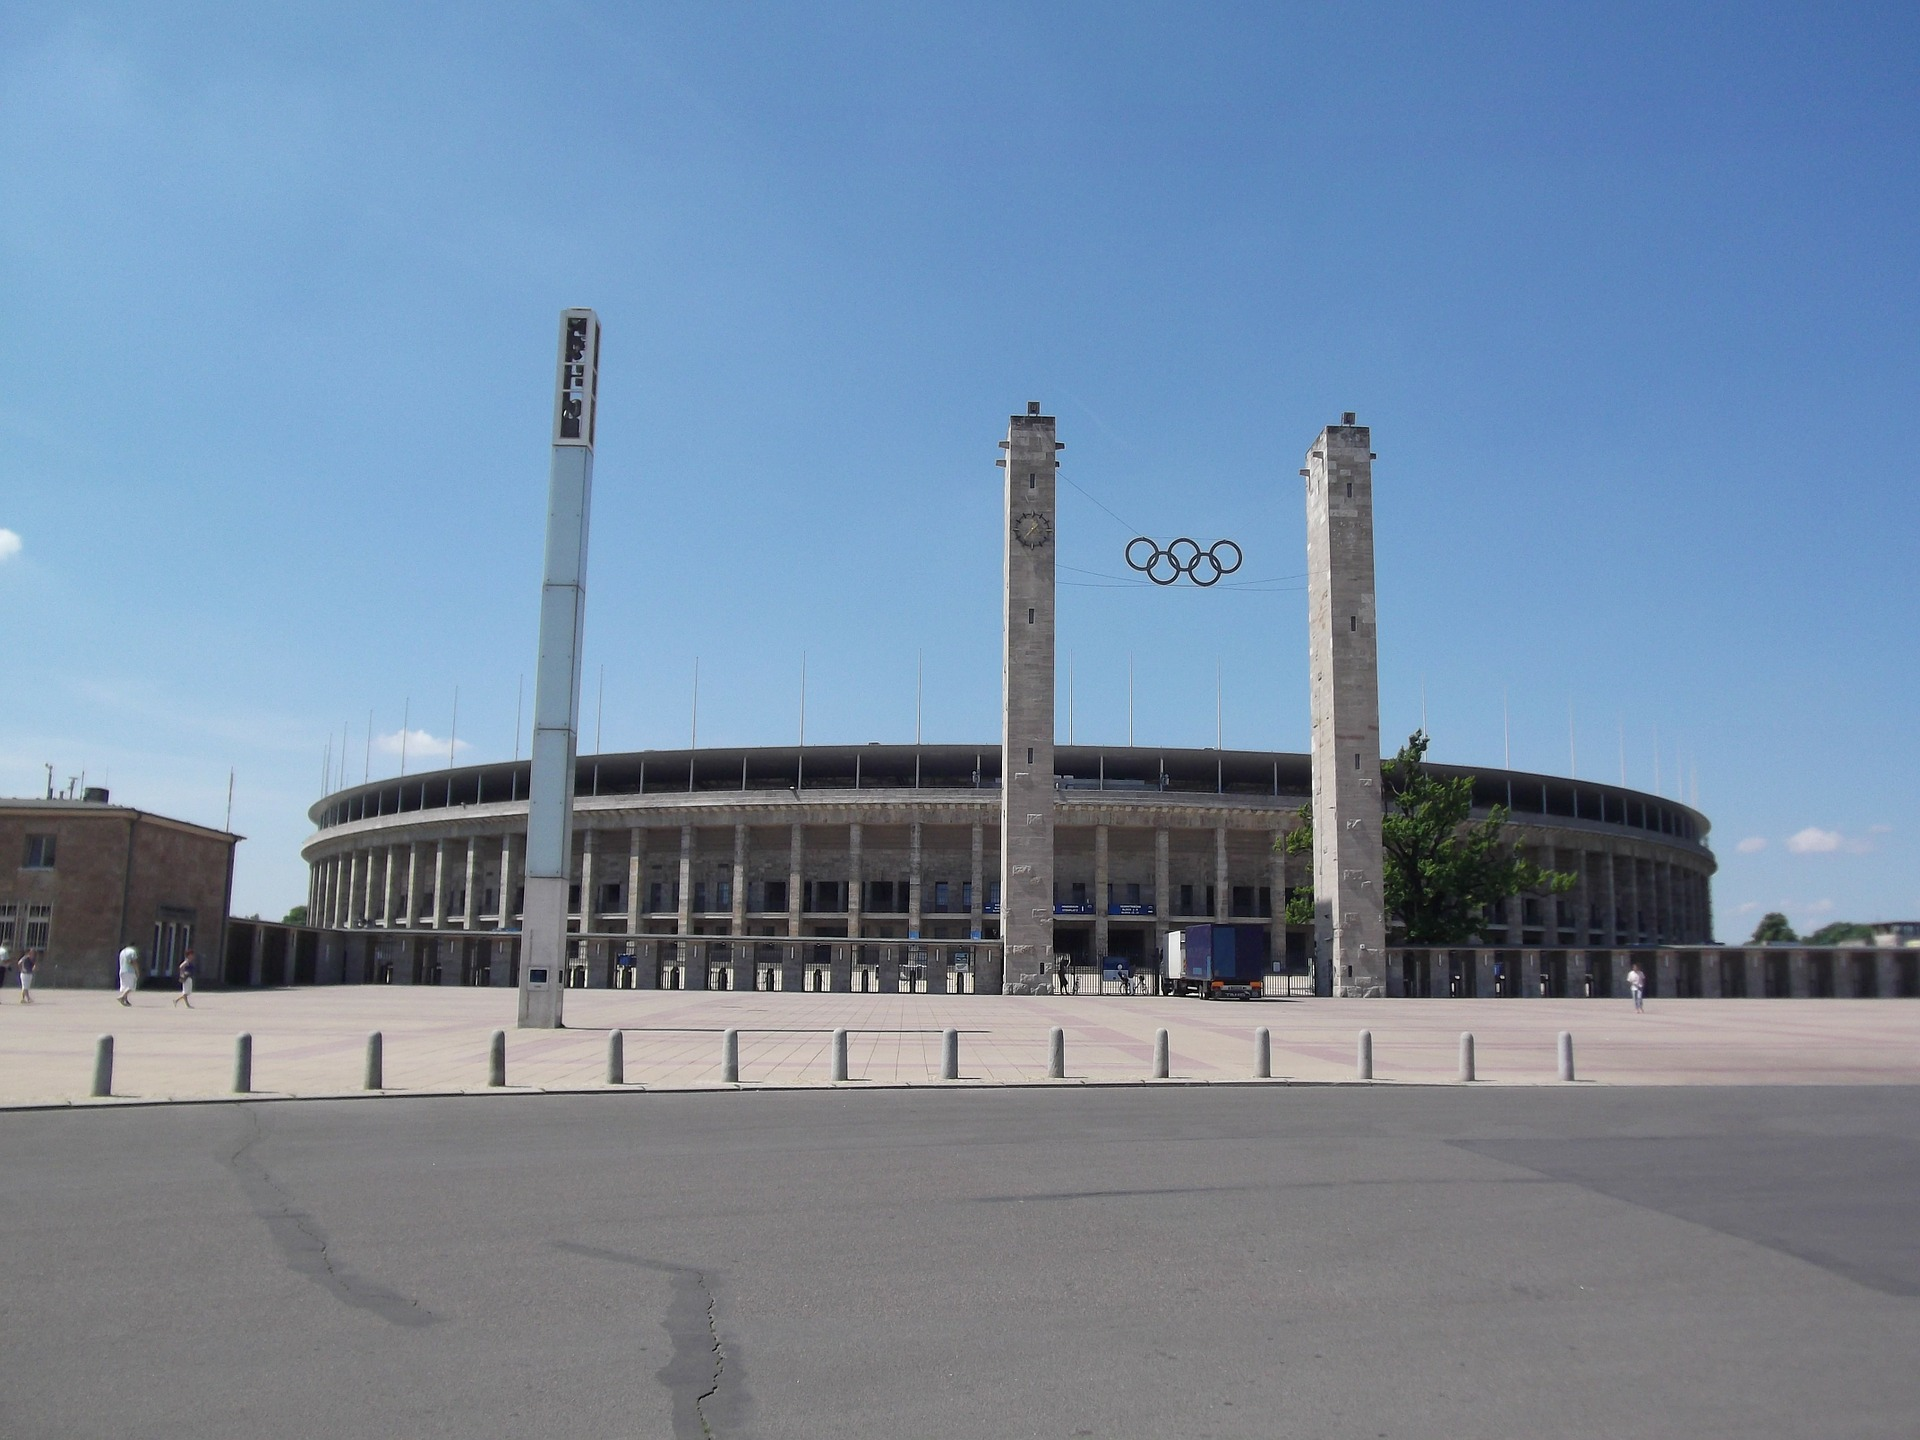 Olympiastadion (olympic Stadium) Berlin, Germany